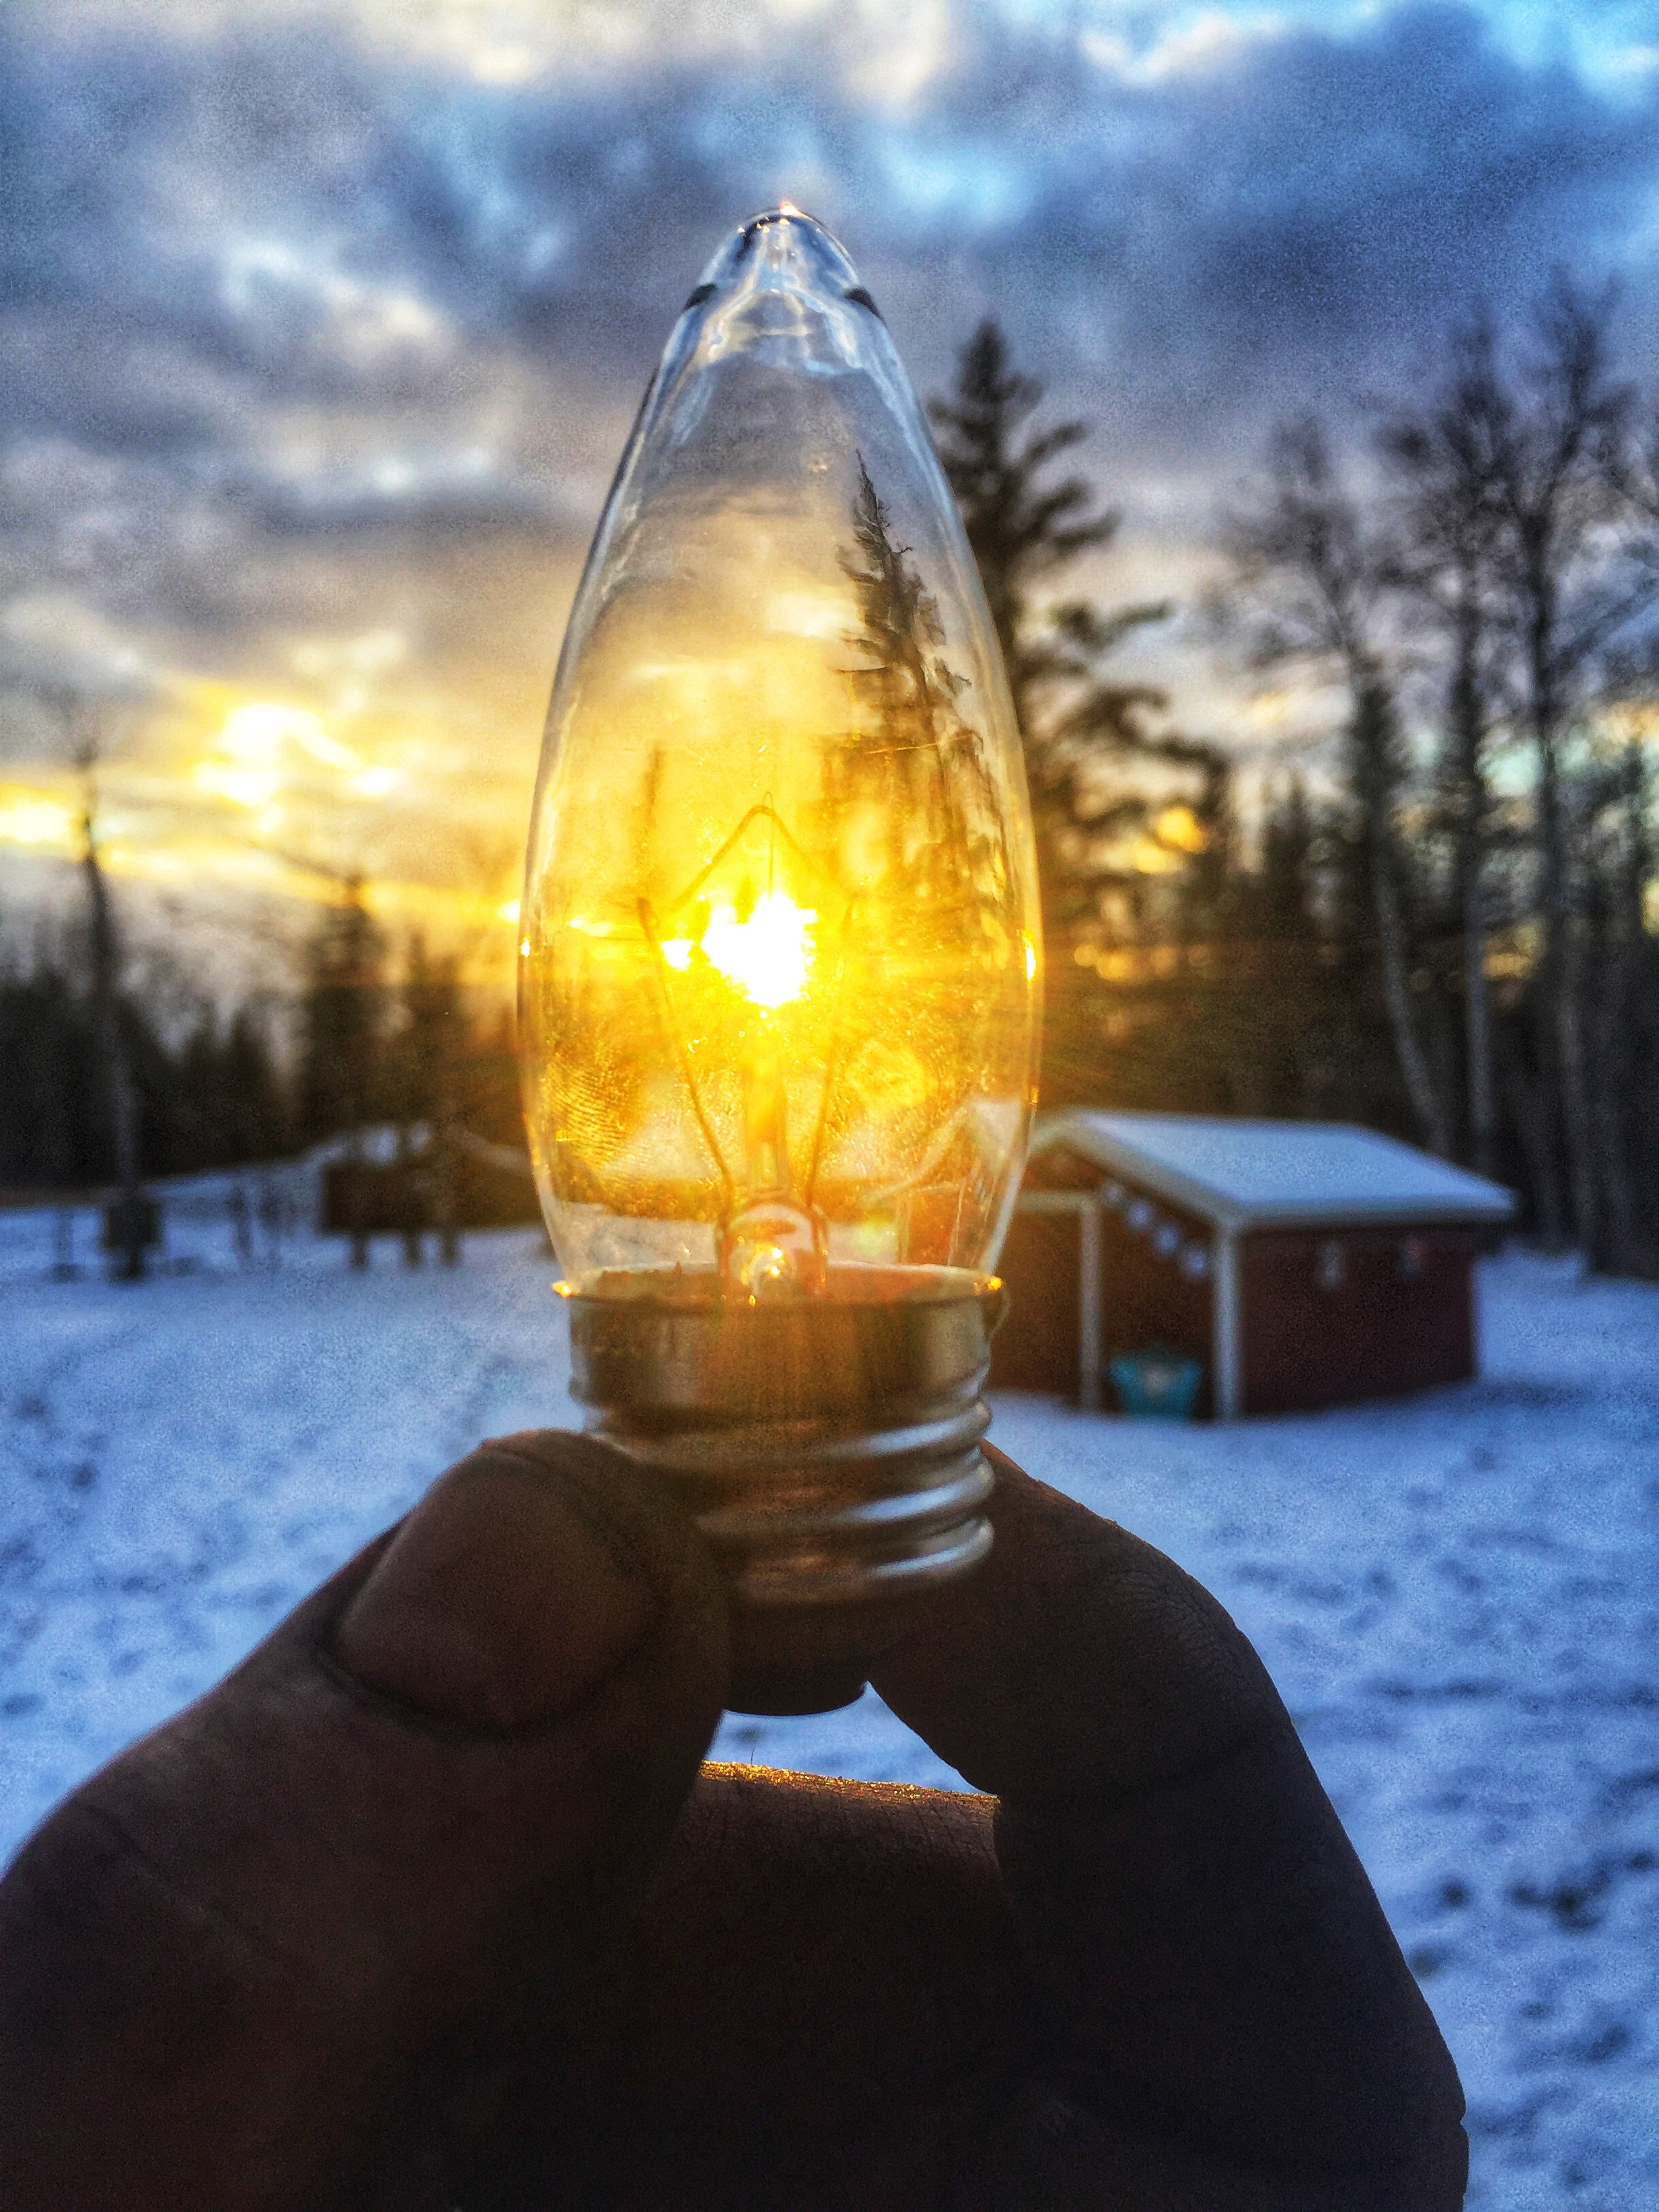 Person Holding Led Bulb in Front of Sunrise Photo, Blur, Insubstantial, Travel, Snow, HQ Photo